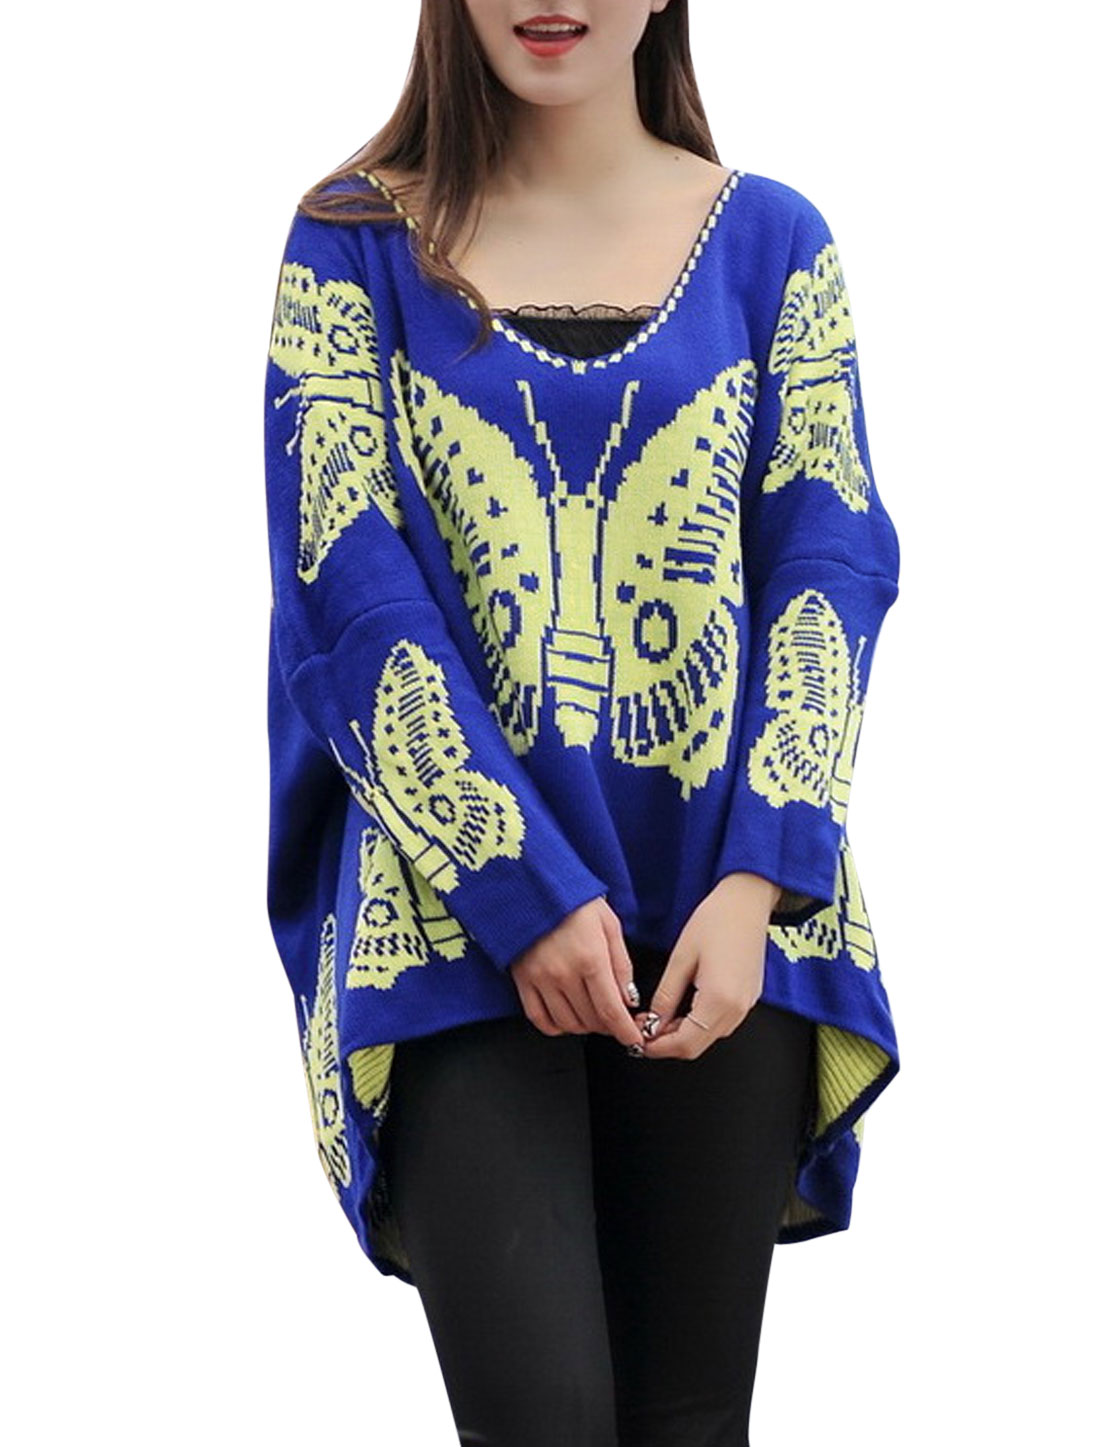 Lady Pullover V Neck Fashionable Sweater Royal Blue Yellow M